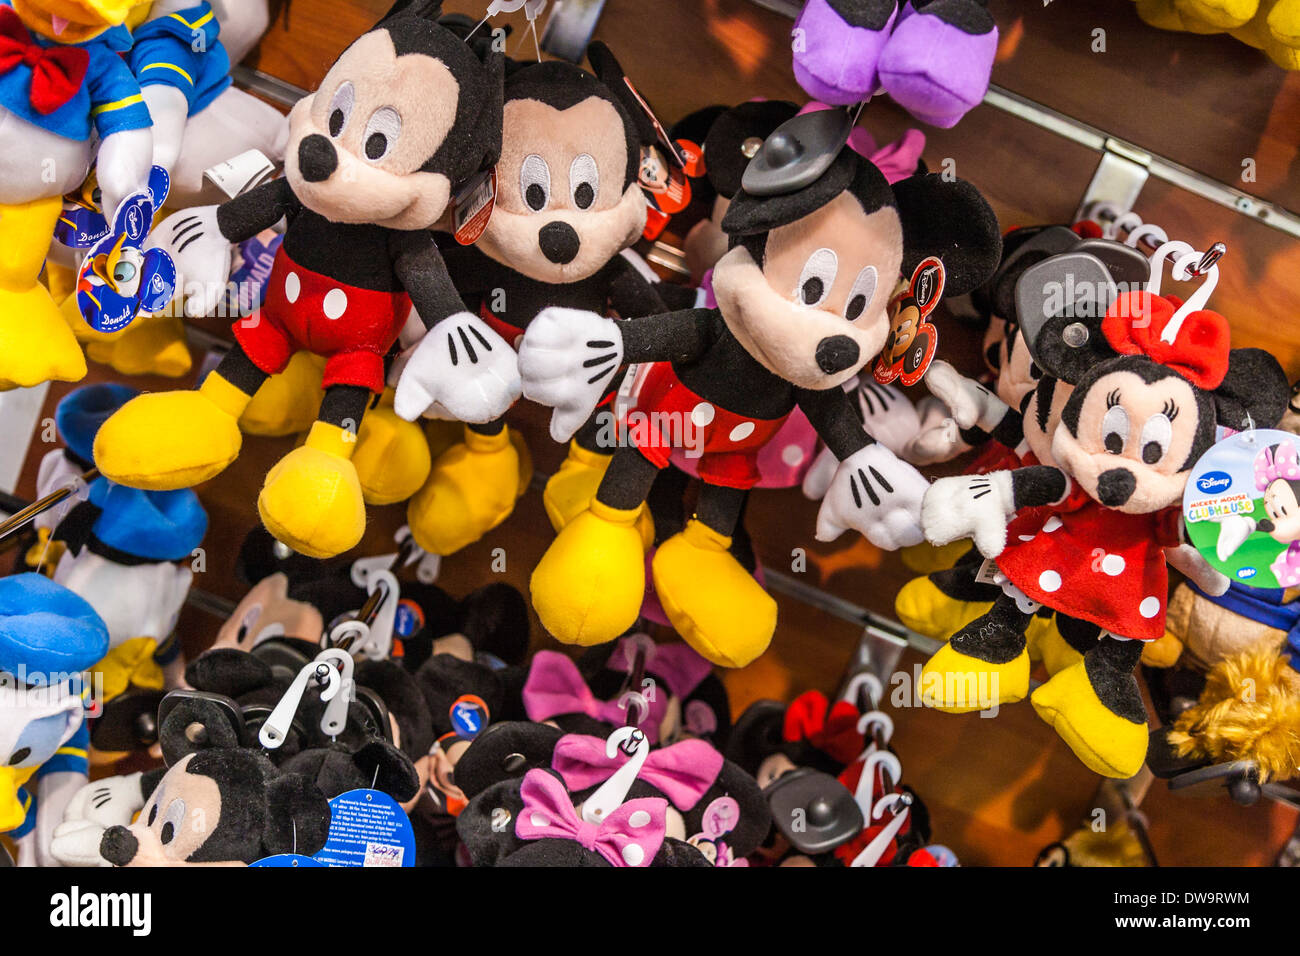 Mickey mouse and minnie dolls on racks for sale in disney outlet stock photo royalty free image - Disney store mickey mouse ...